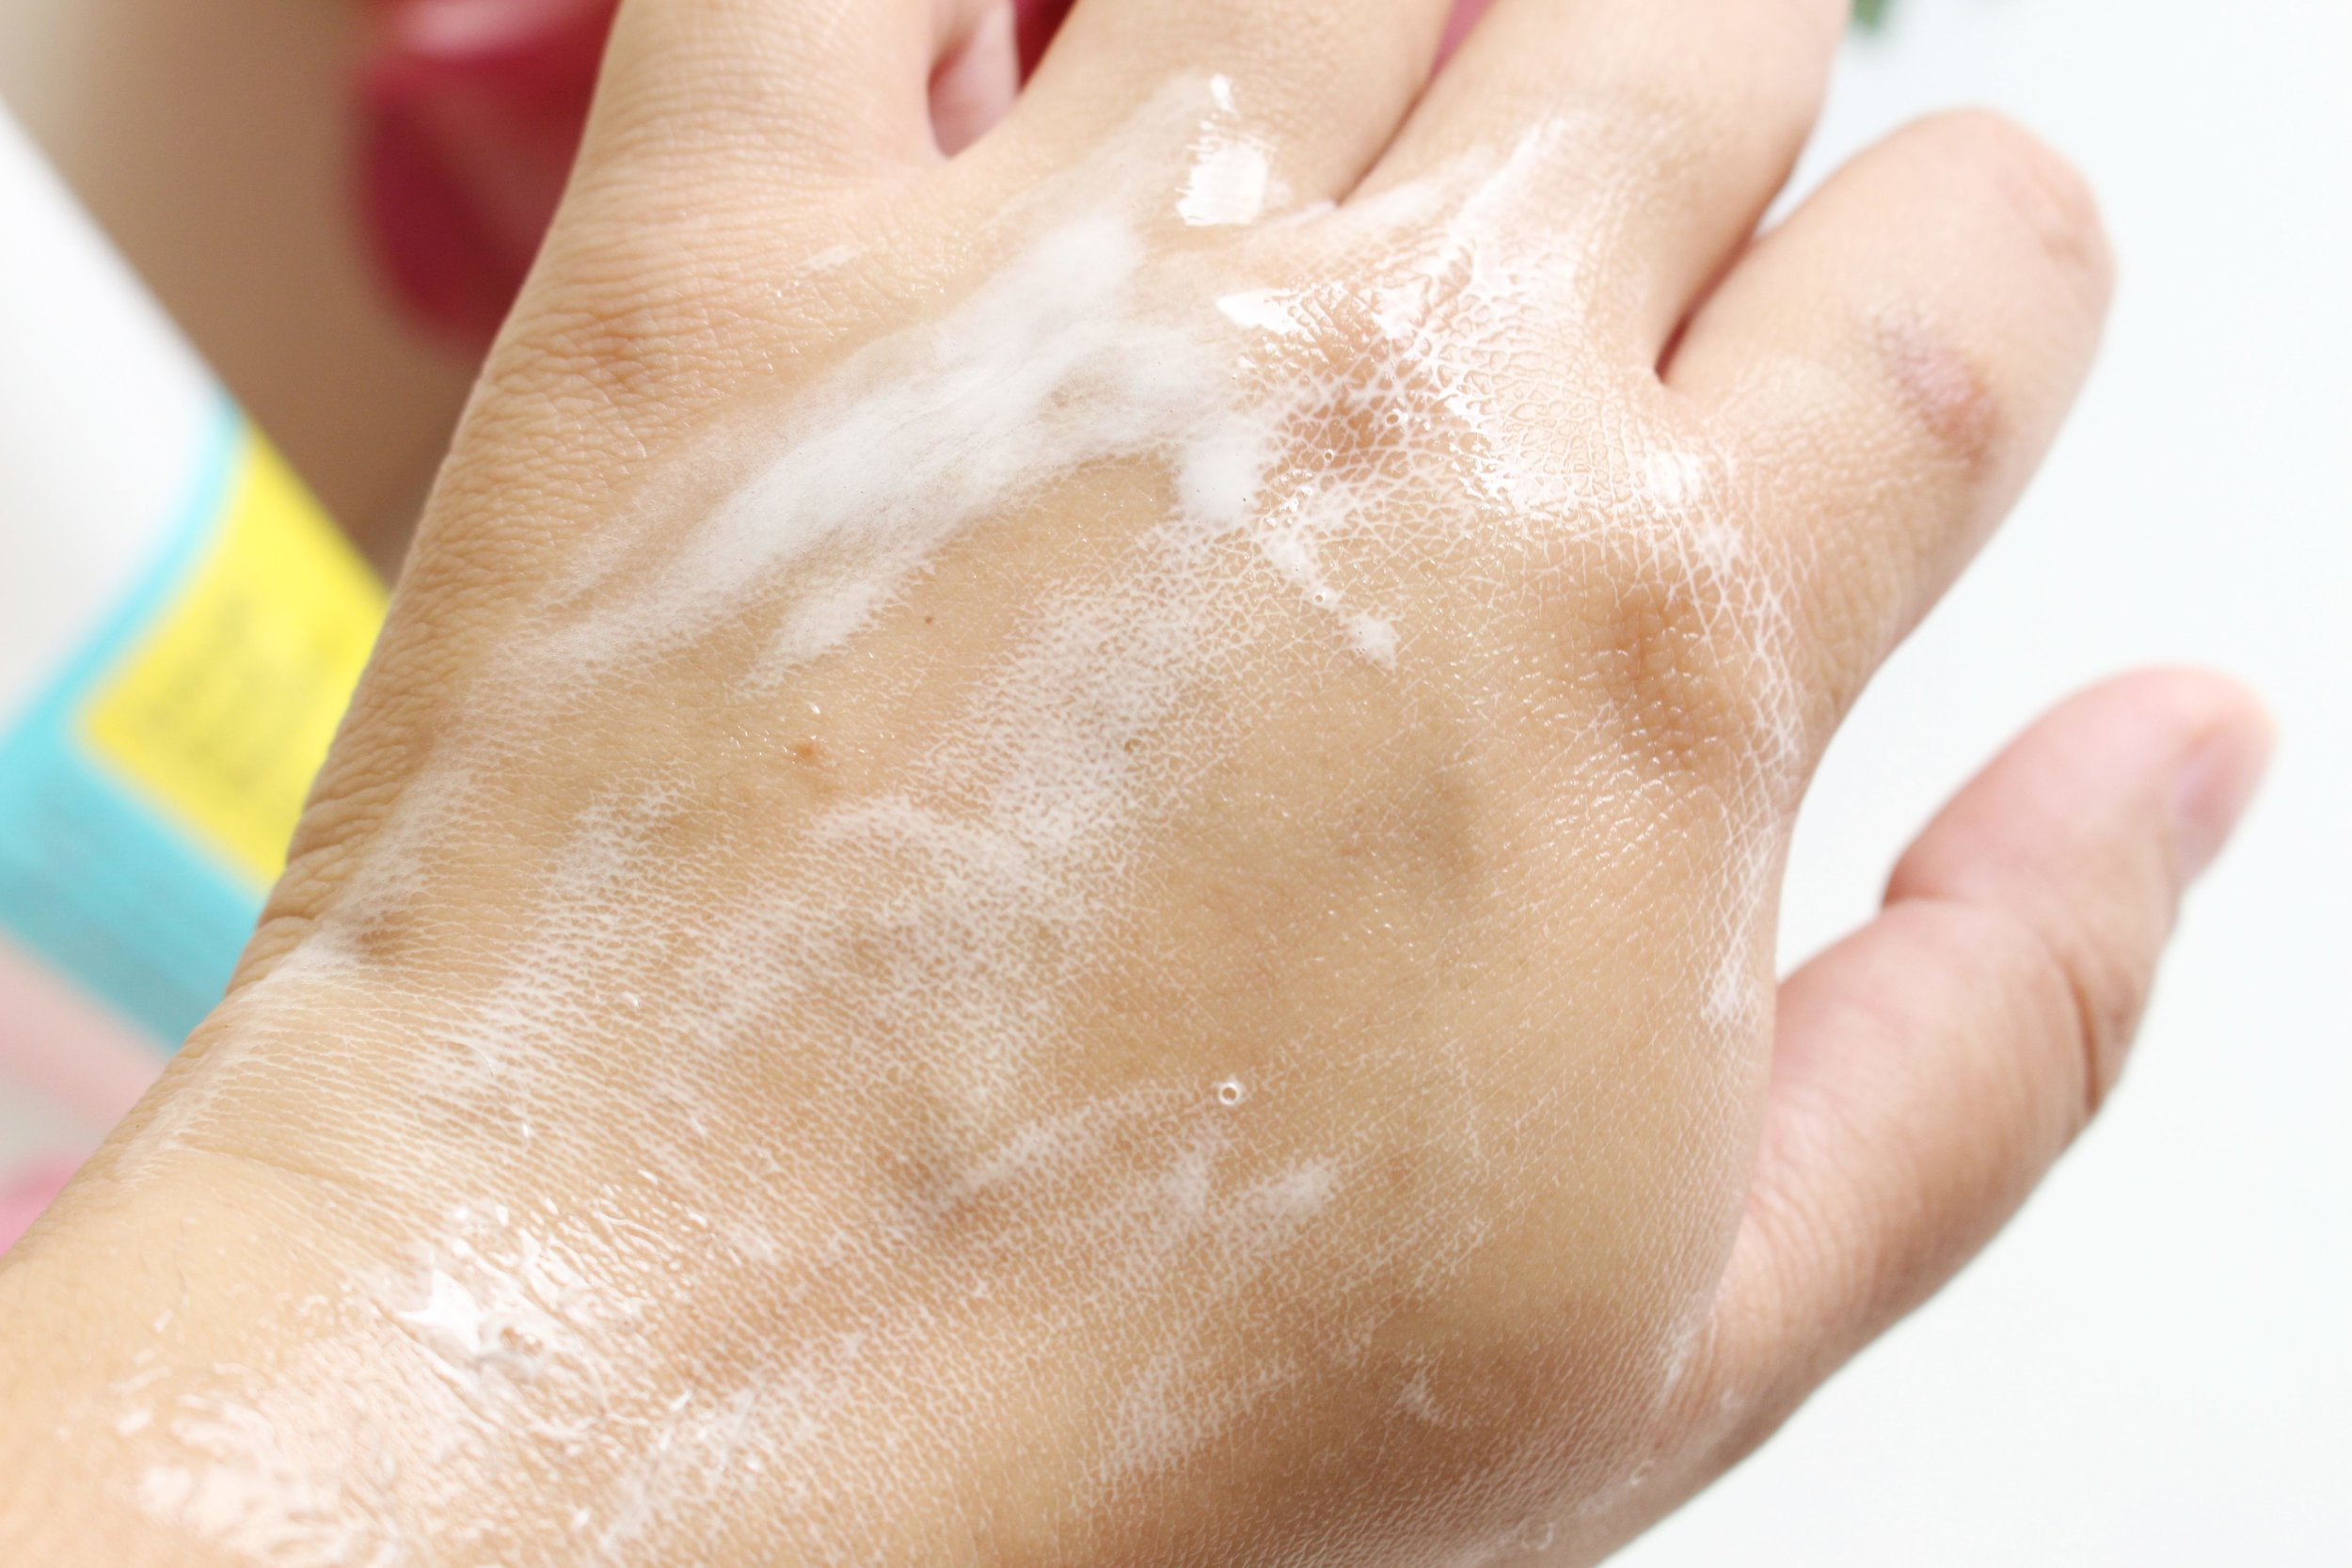 Sorry if the foam looks weaksauce here, it's just that it was not easy having this on my hand and a DSLR on another! The COSRX cleanser can produce a more satisfying foam given the proper attention.